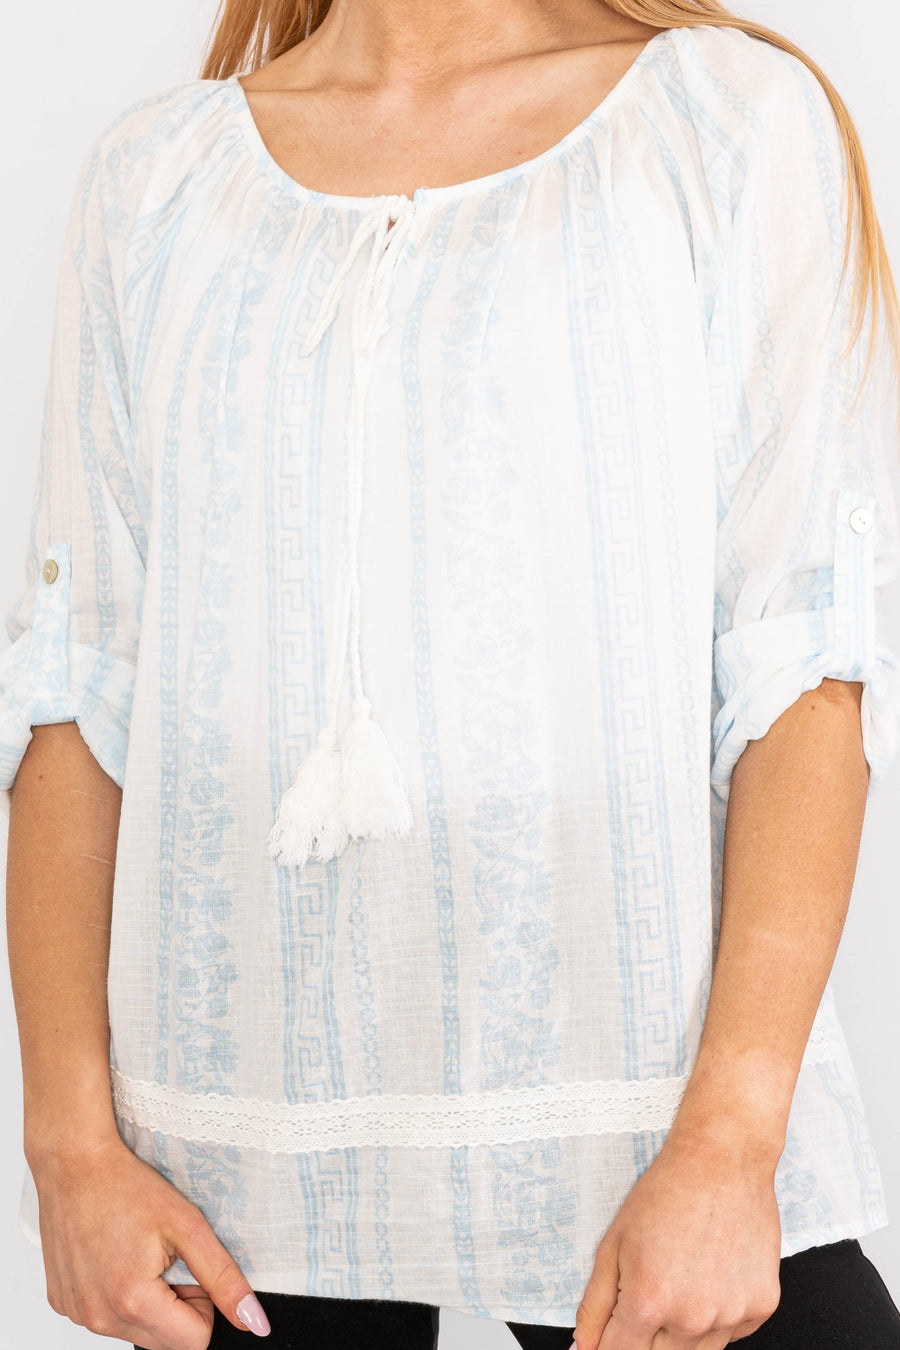 Drawstring top with rolled up sleeves.